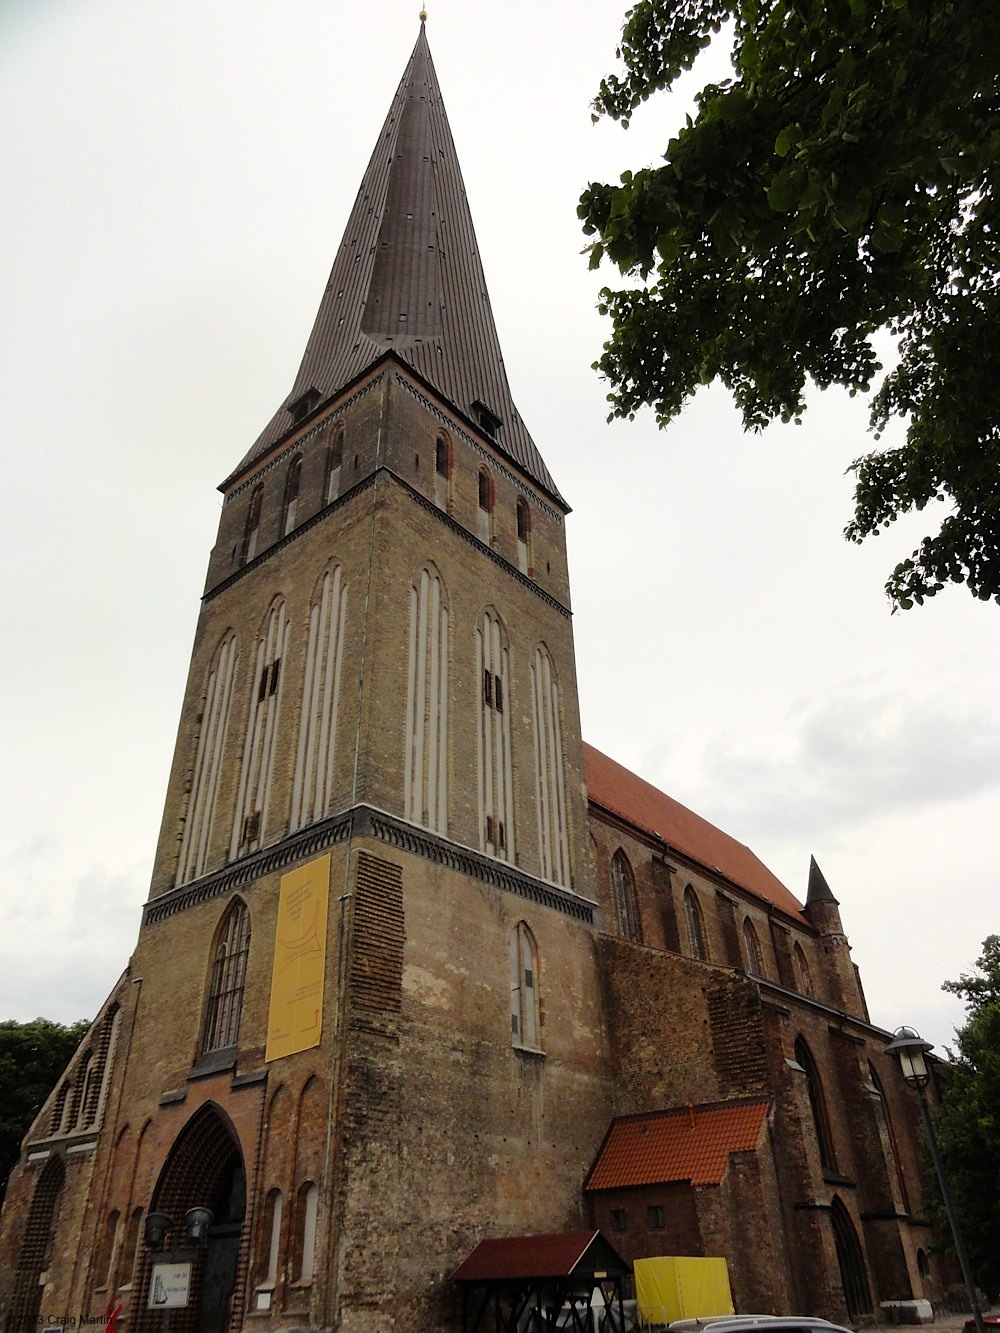 And made our way to the Petrikirke: over 200 steps to the top.